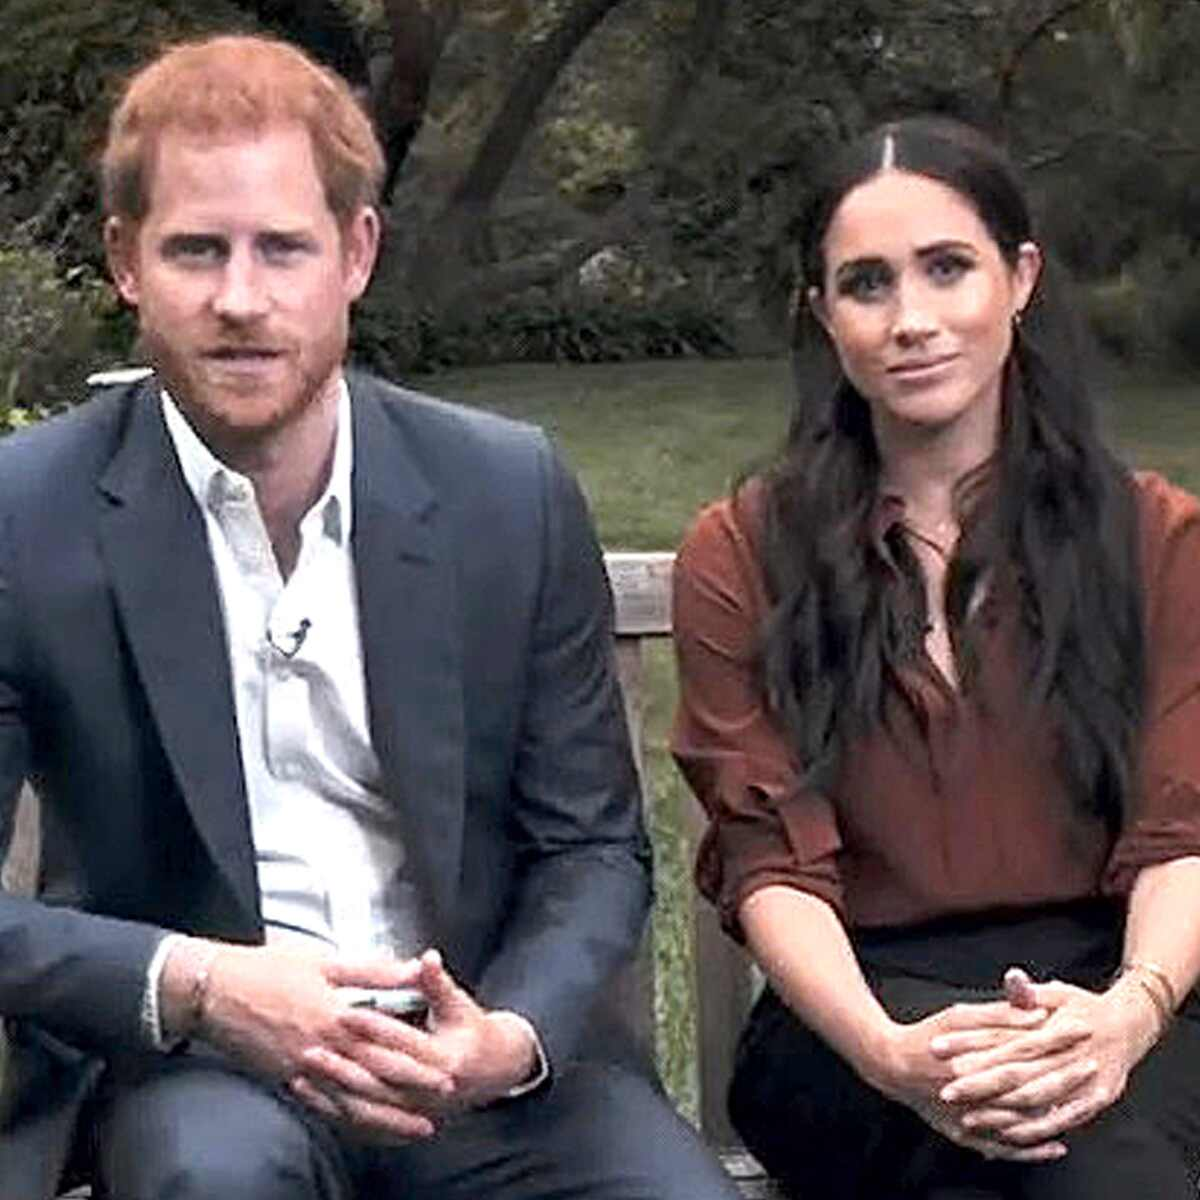 Prince Harry, Meghan Markle, Time 100 special